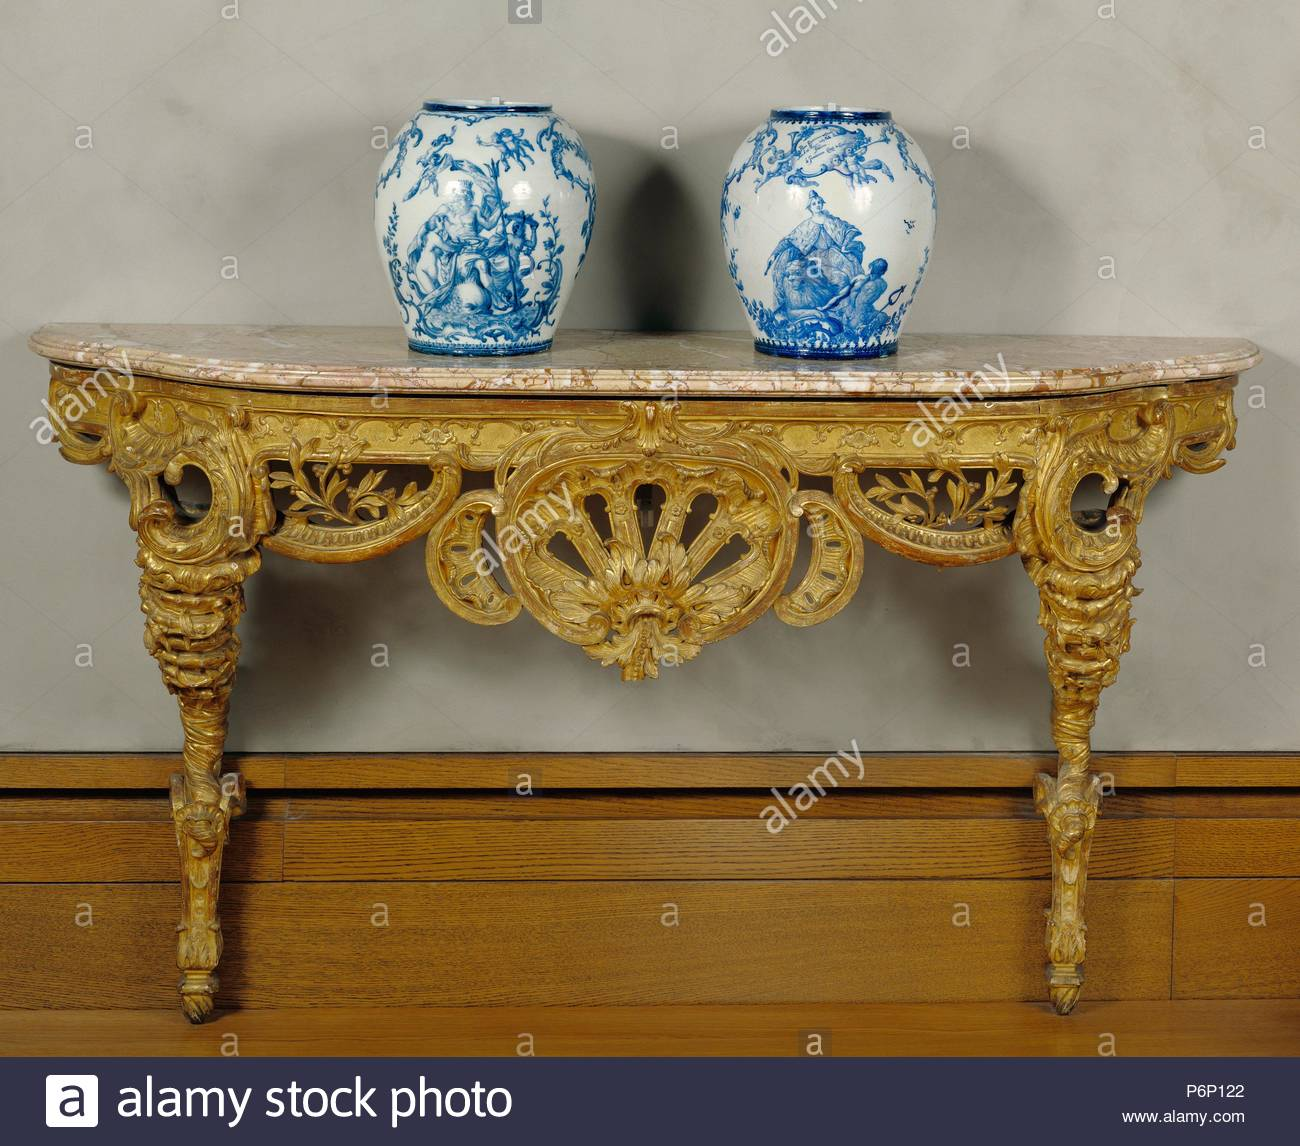 Console Table Unknown Piedmont Italy Europe About 1730 Carved And Gilded Oak Sarrancolin Marble Top Object H 87 X W 196 22 X D 78 11 Cm H